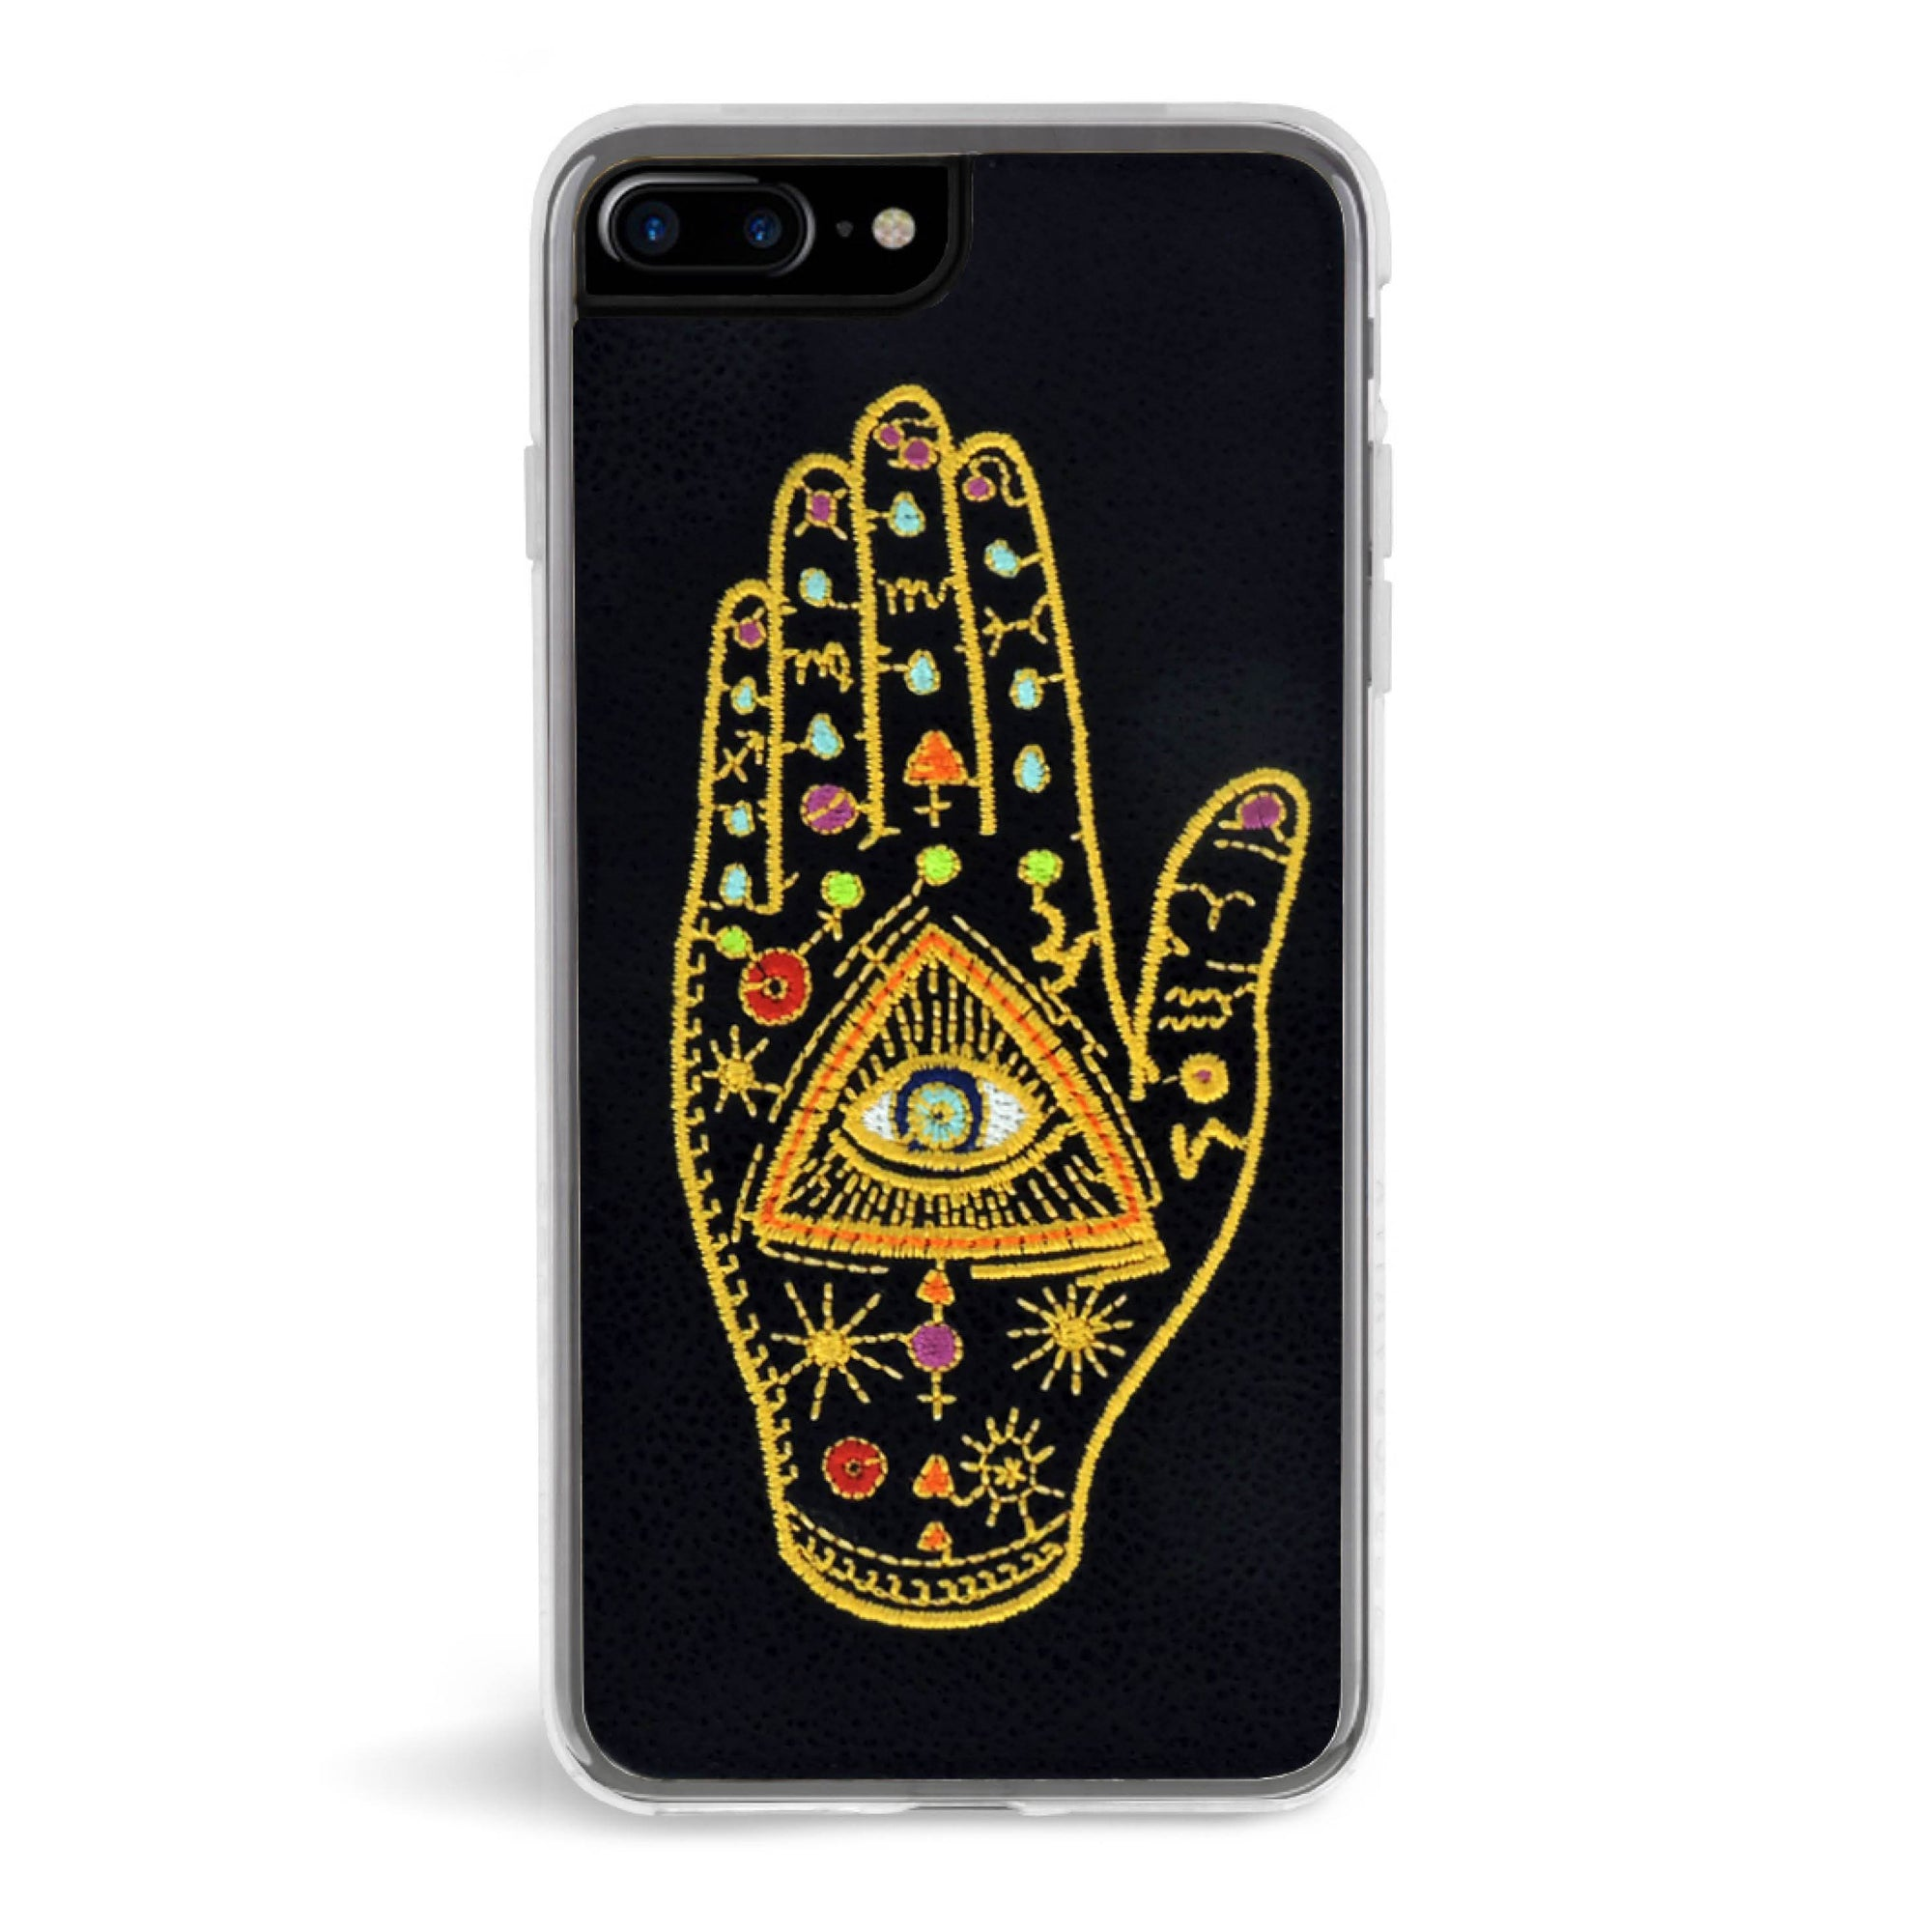 Zero Gravity Behold Embroidered Protective Case For iPhone 8 Plus / 7 Plus